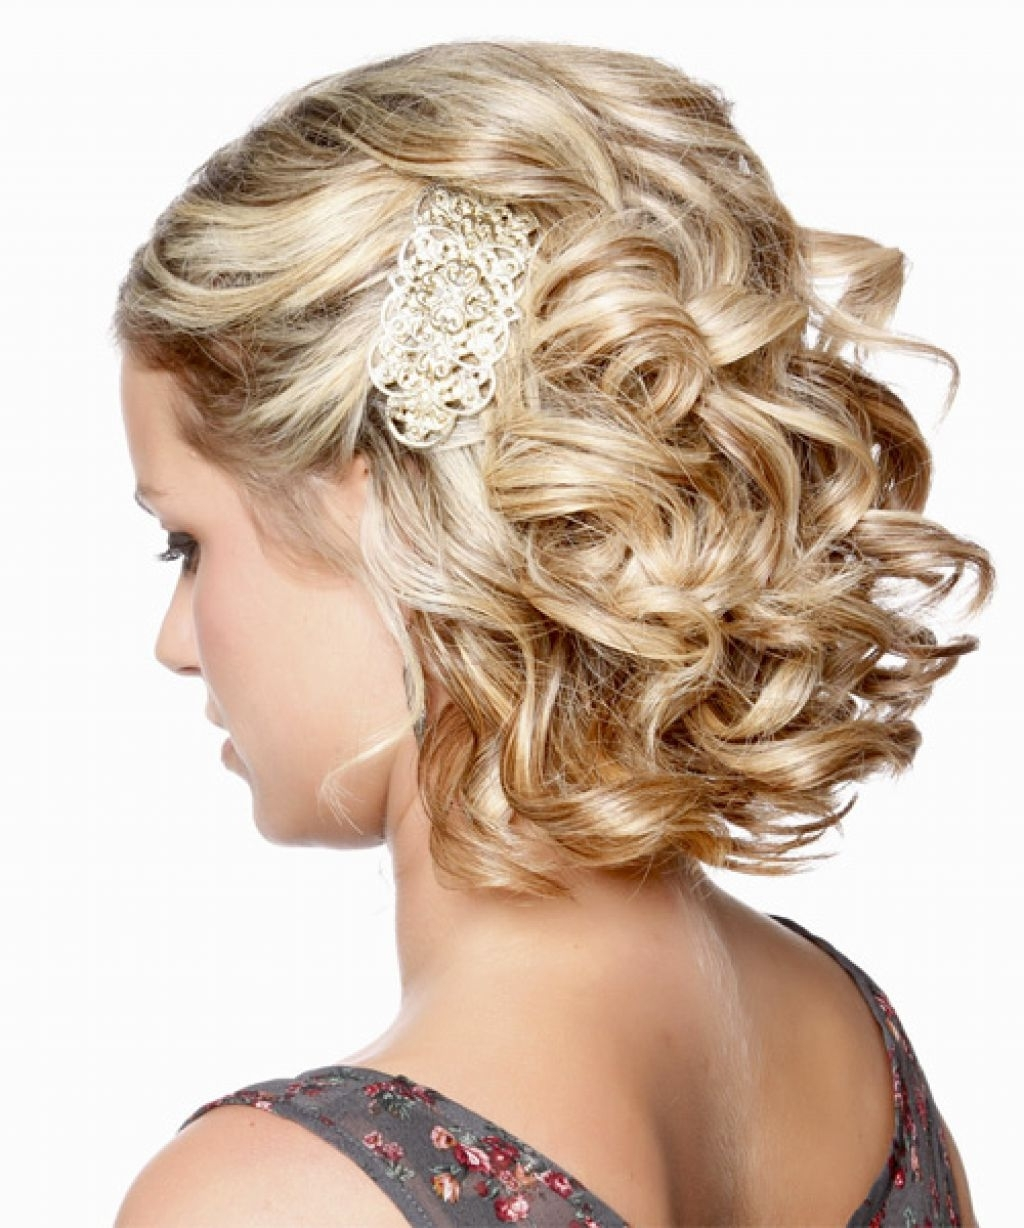 Curly Updo Hairstyle Medium Blonde Side View With Regard To Curly Updo Hairstyles For Medium Length Hair (View 2 of 15)